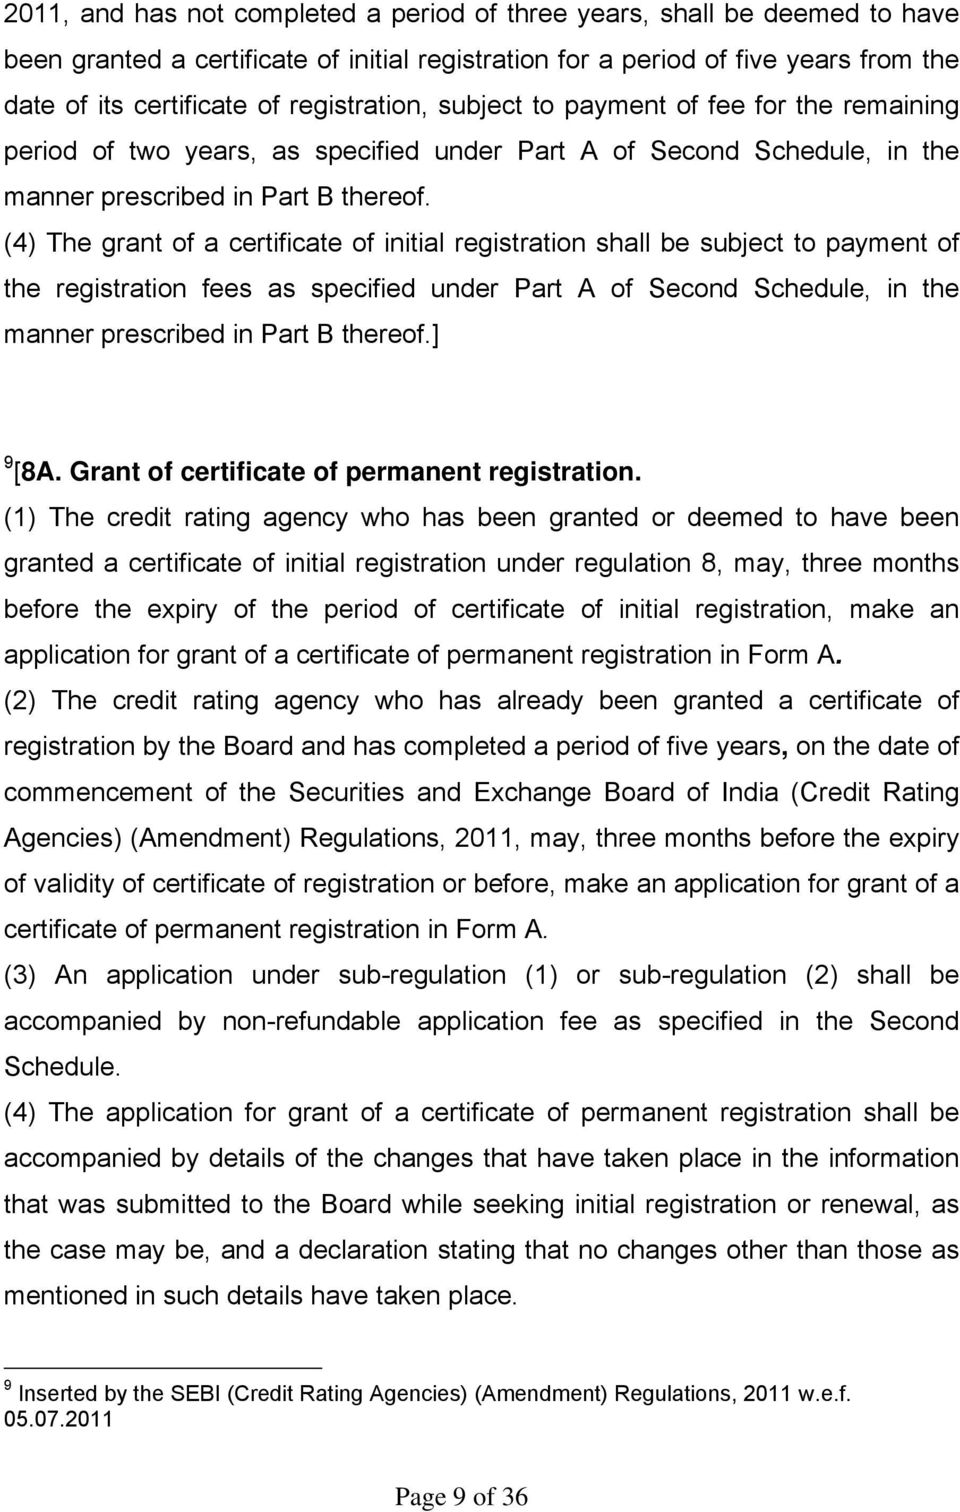 (4) The grant of a certificate of initial registration shall be subject to payment of the registration fees as specified under Part A of Second Schedule, in the manner prescribed in Part B thereof.